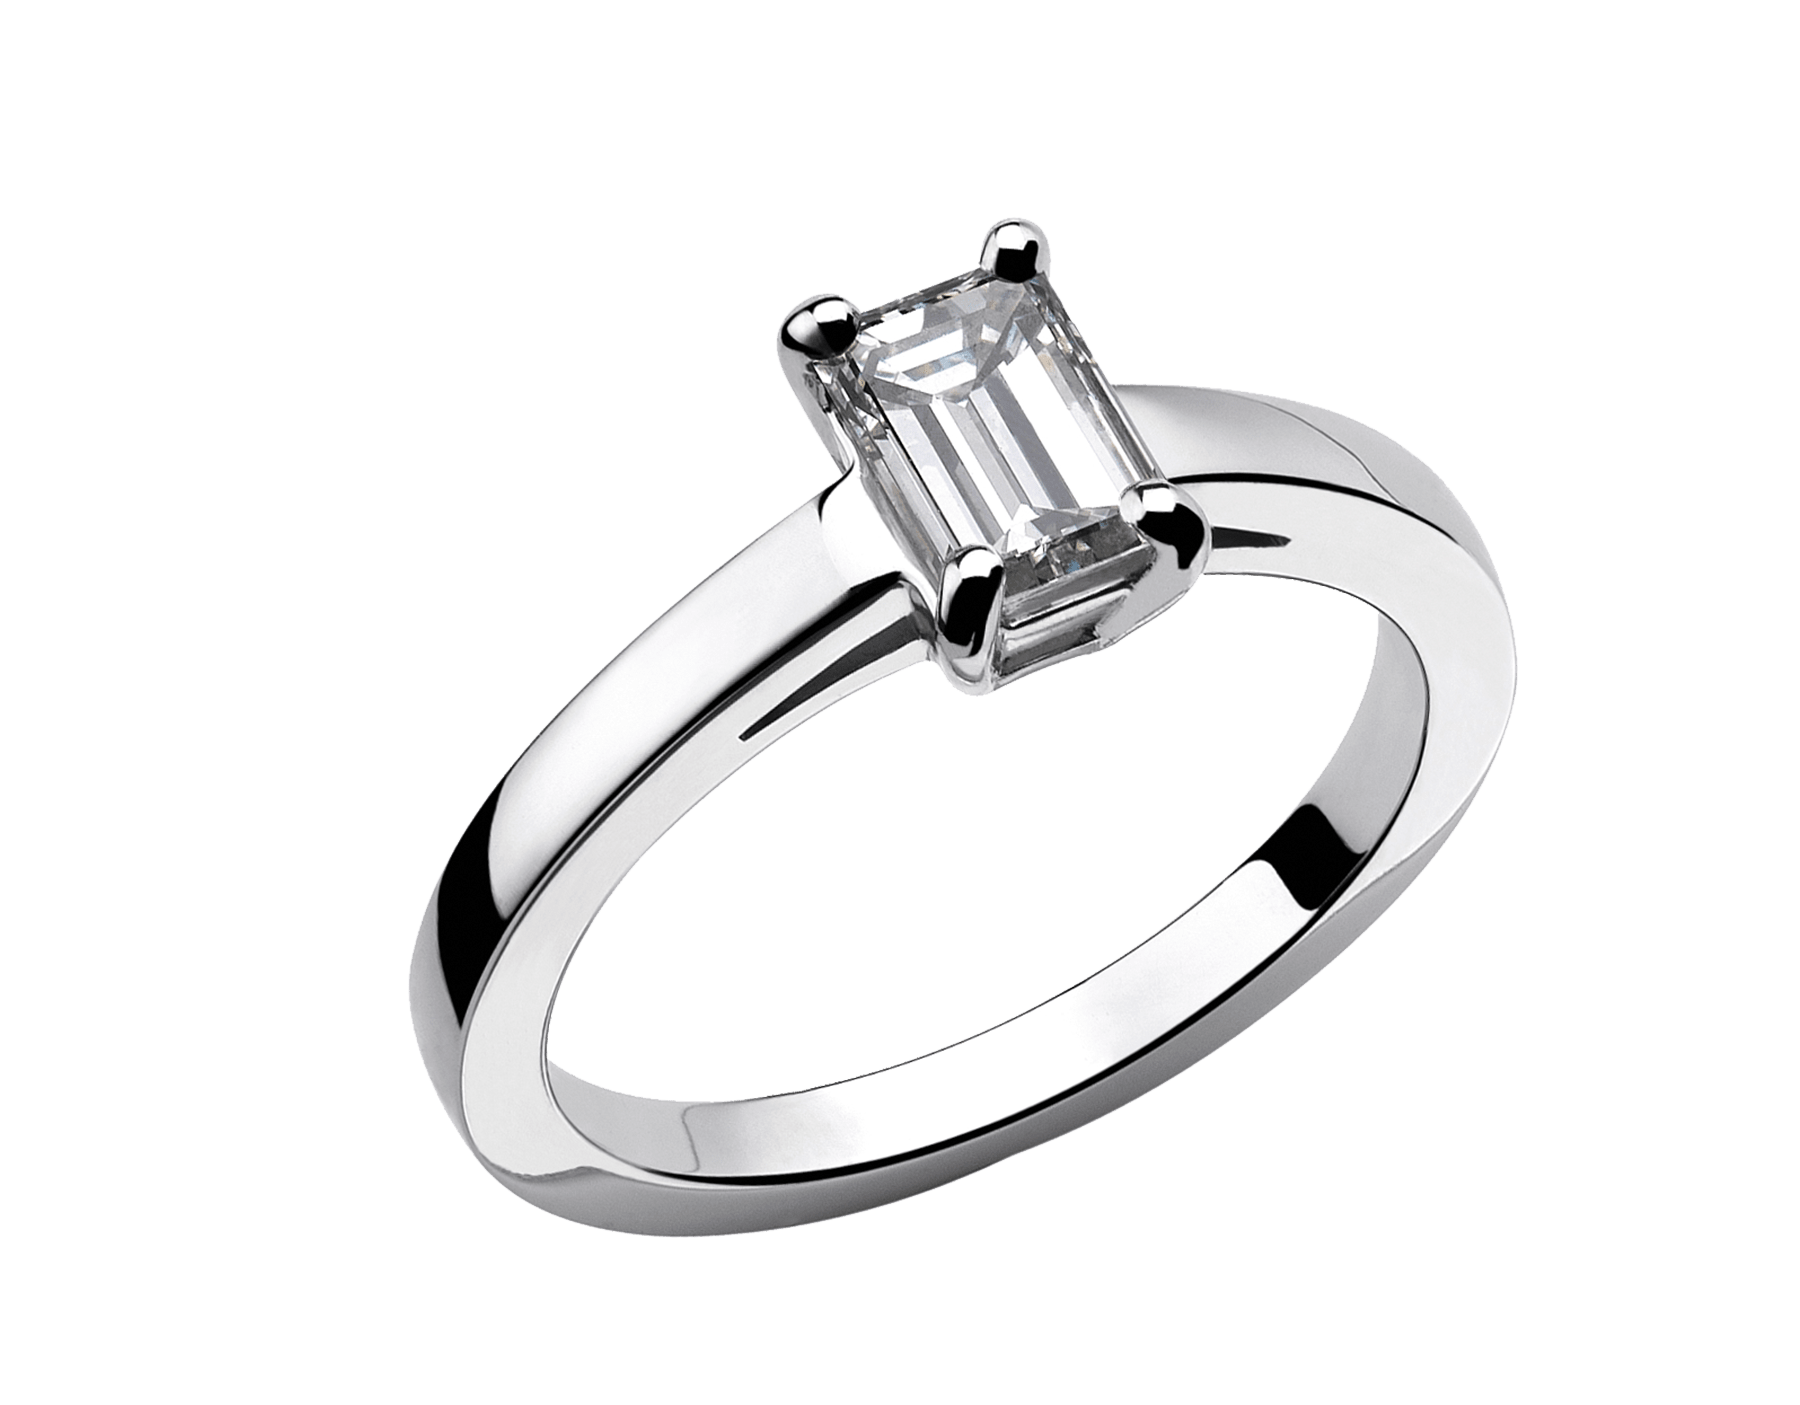 Griffe solitaire ring in platinum with emerald cut diamond AN853572 image 1